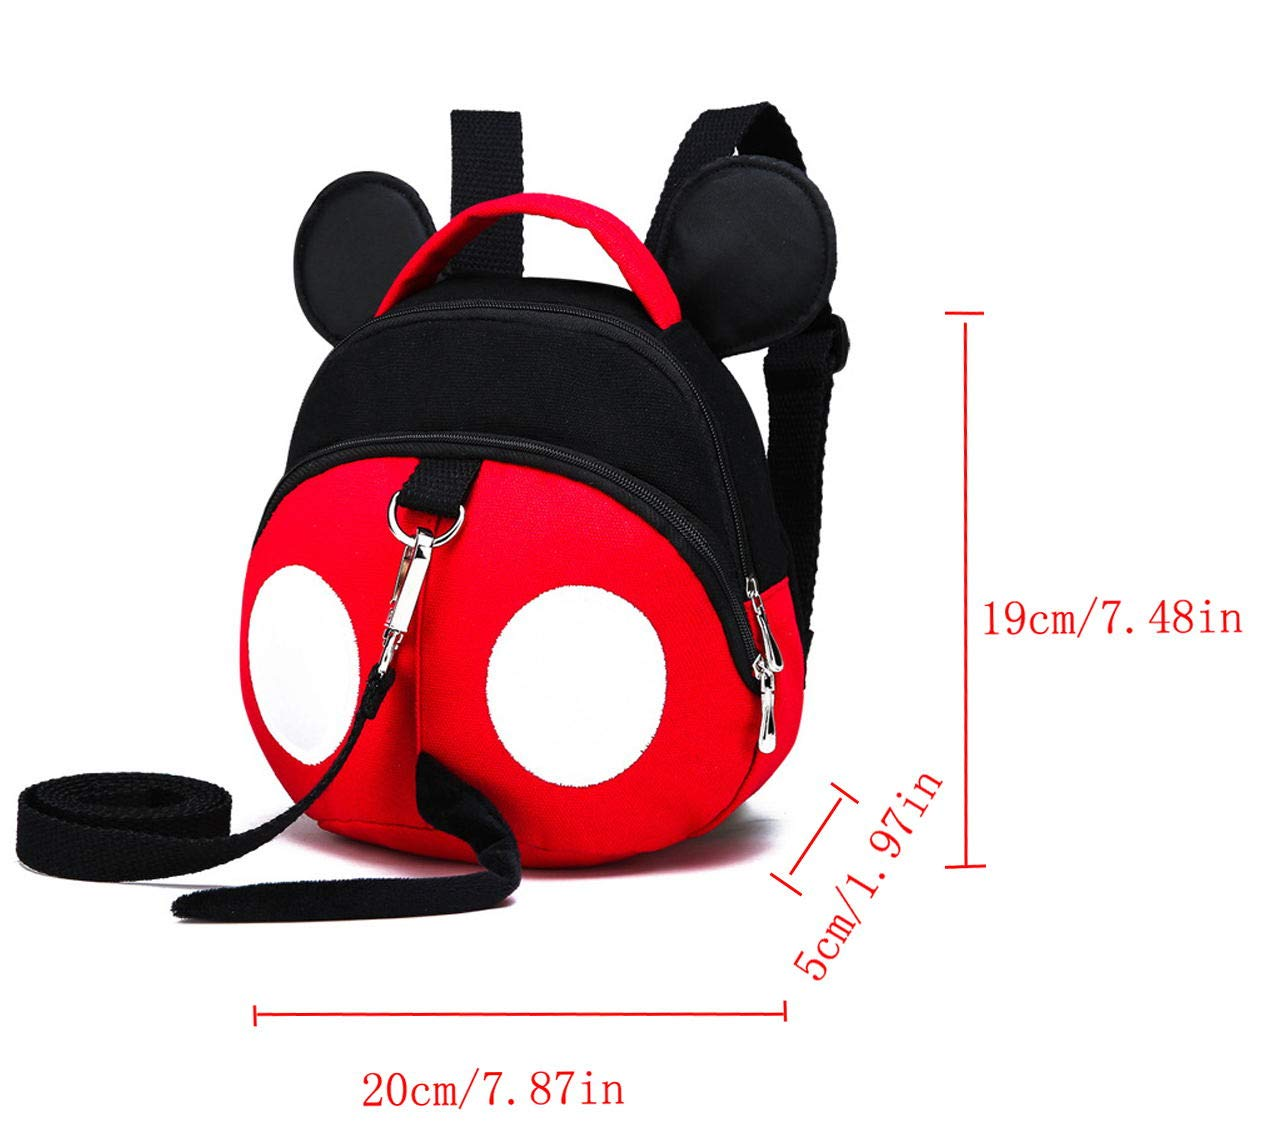 Baby Anti-Lost Harness, Yimidear Purified Cotton Toddler Backpack with Safety Leash for Babies & Kids Boys and Girls by Yimidear (Image #6)